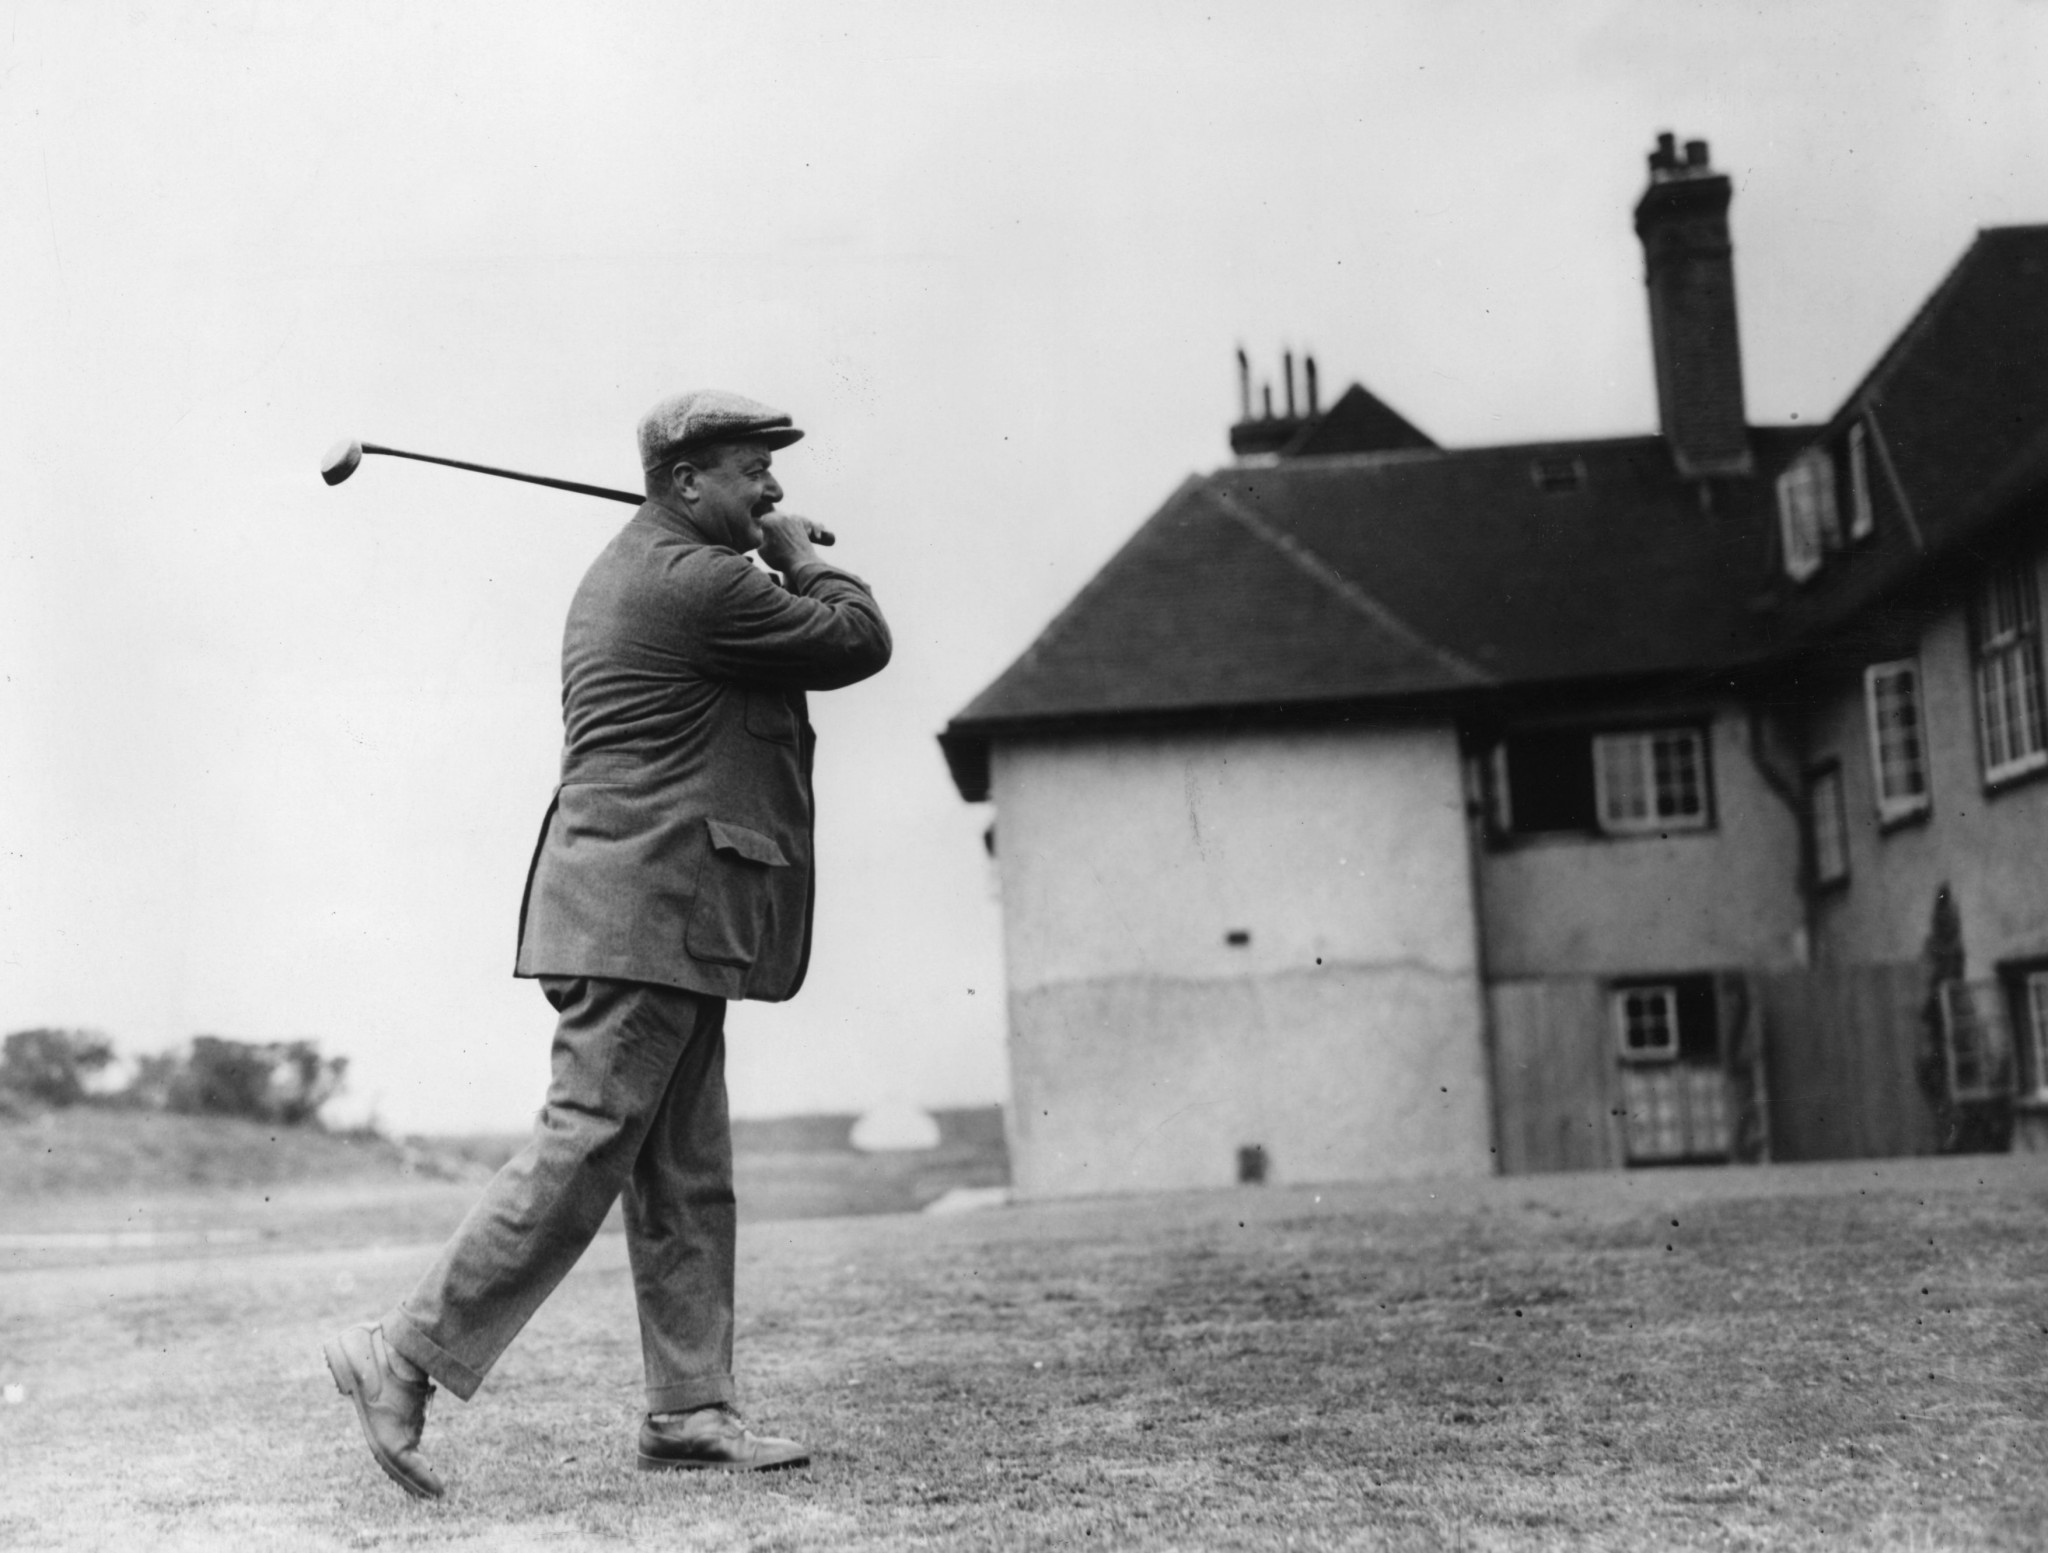 Arnaud Massy, the first French winner of the Open Championship in 1907, led France to team glory in Paris ©Getty Images